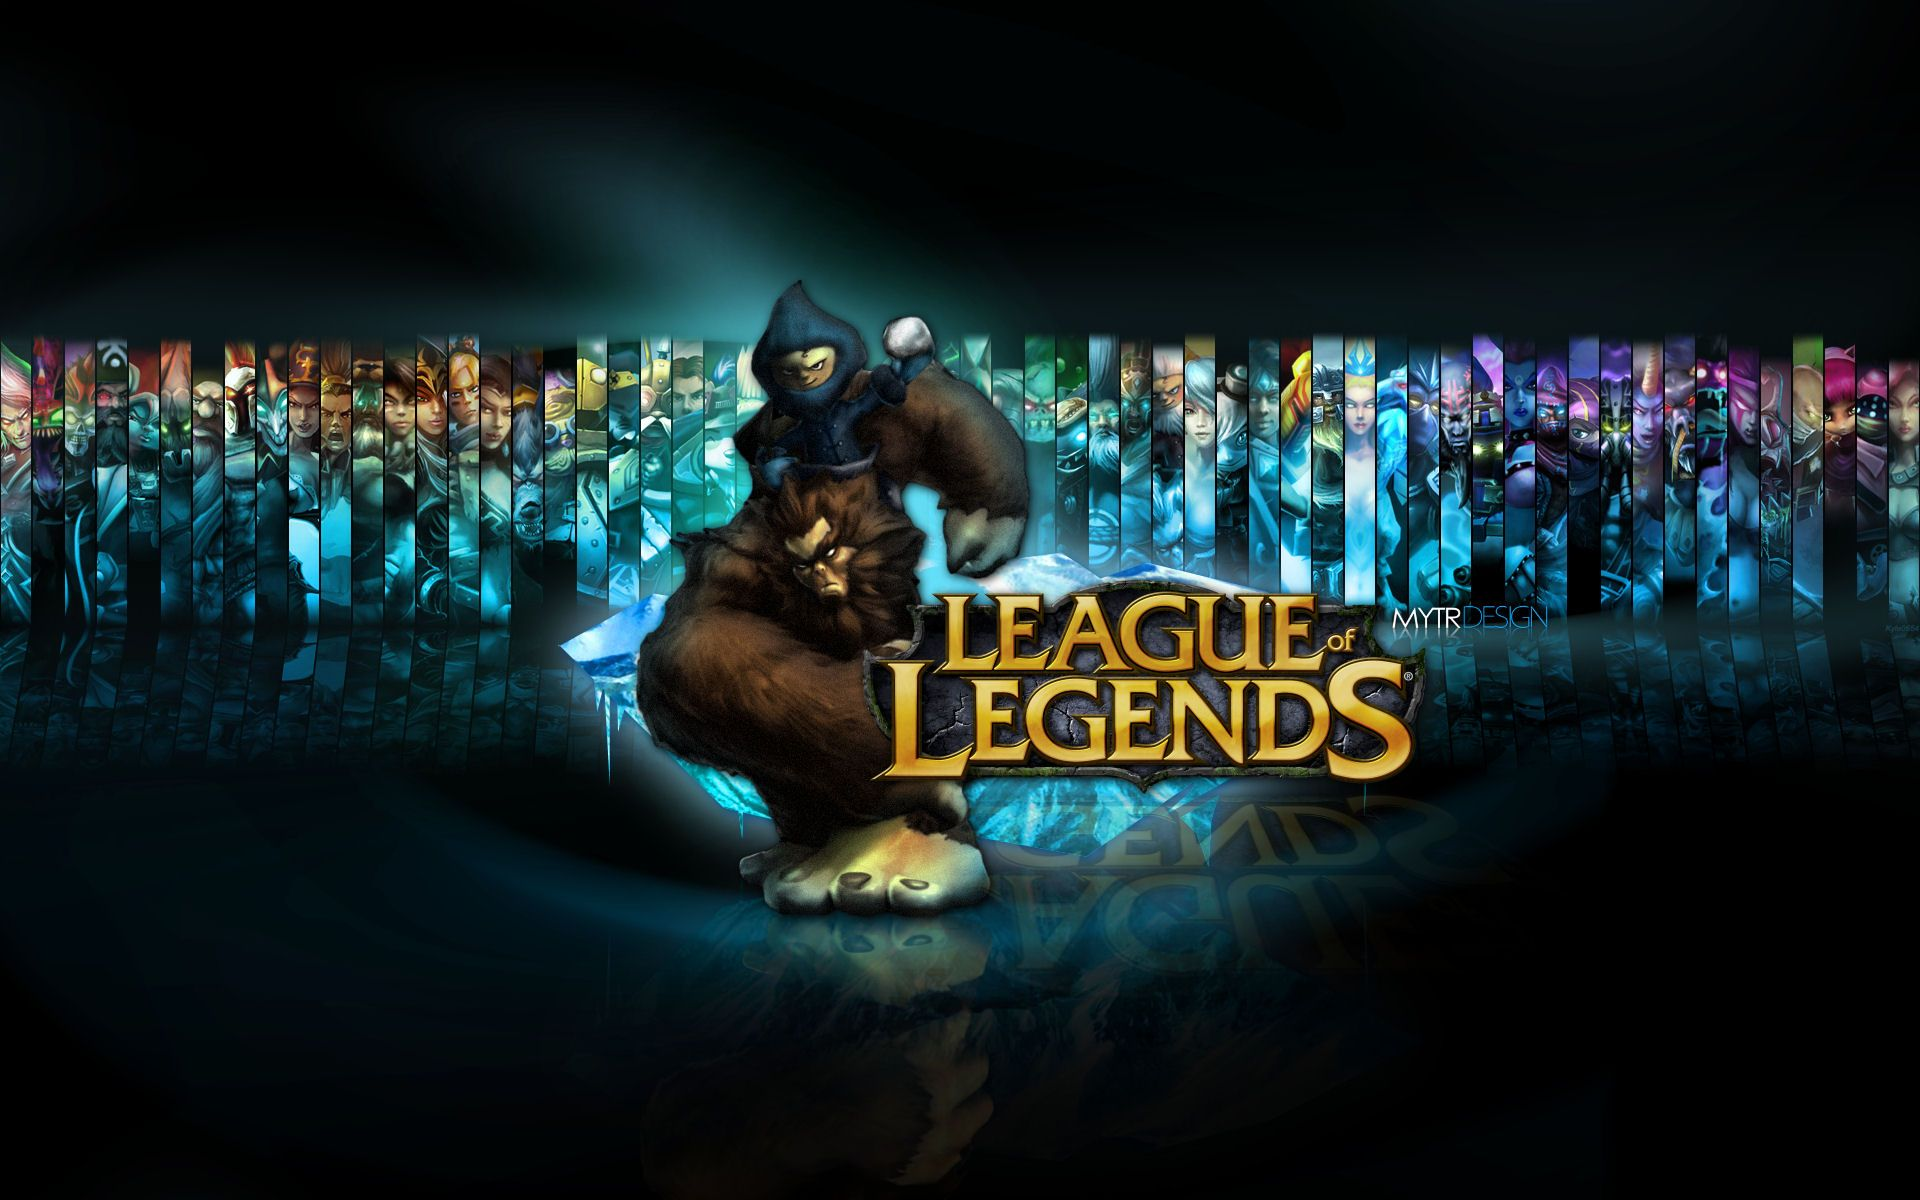 desktop backgrounds league of legends #5